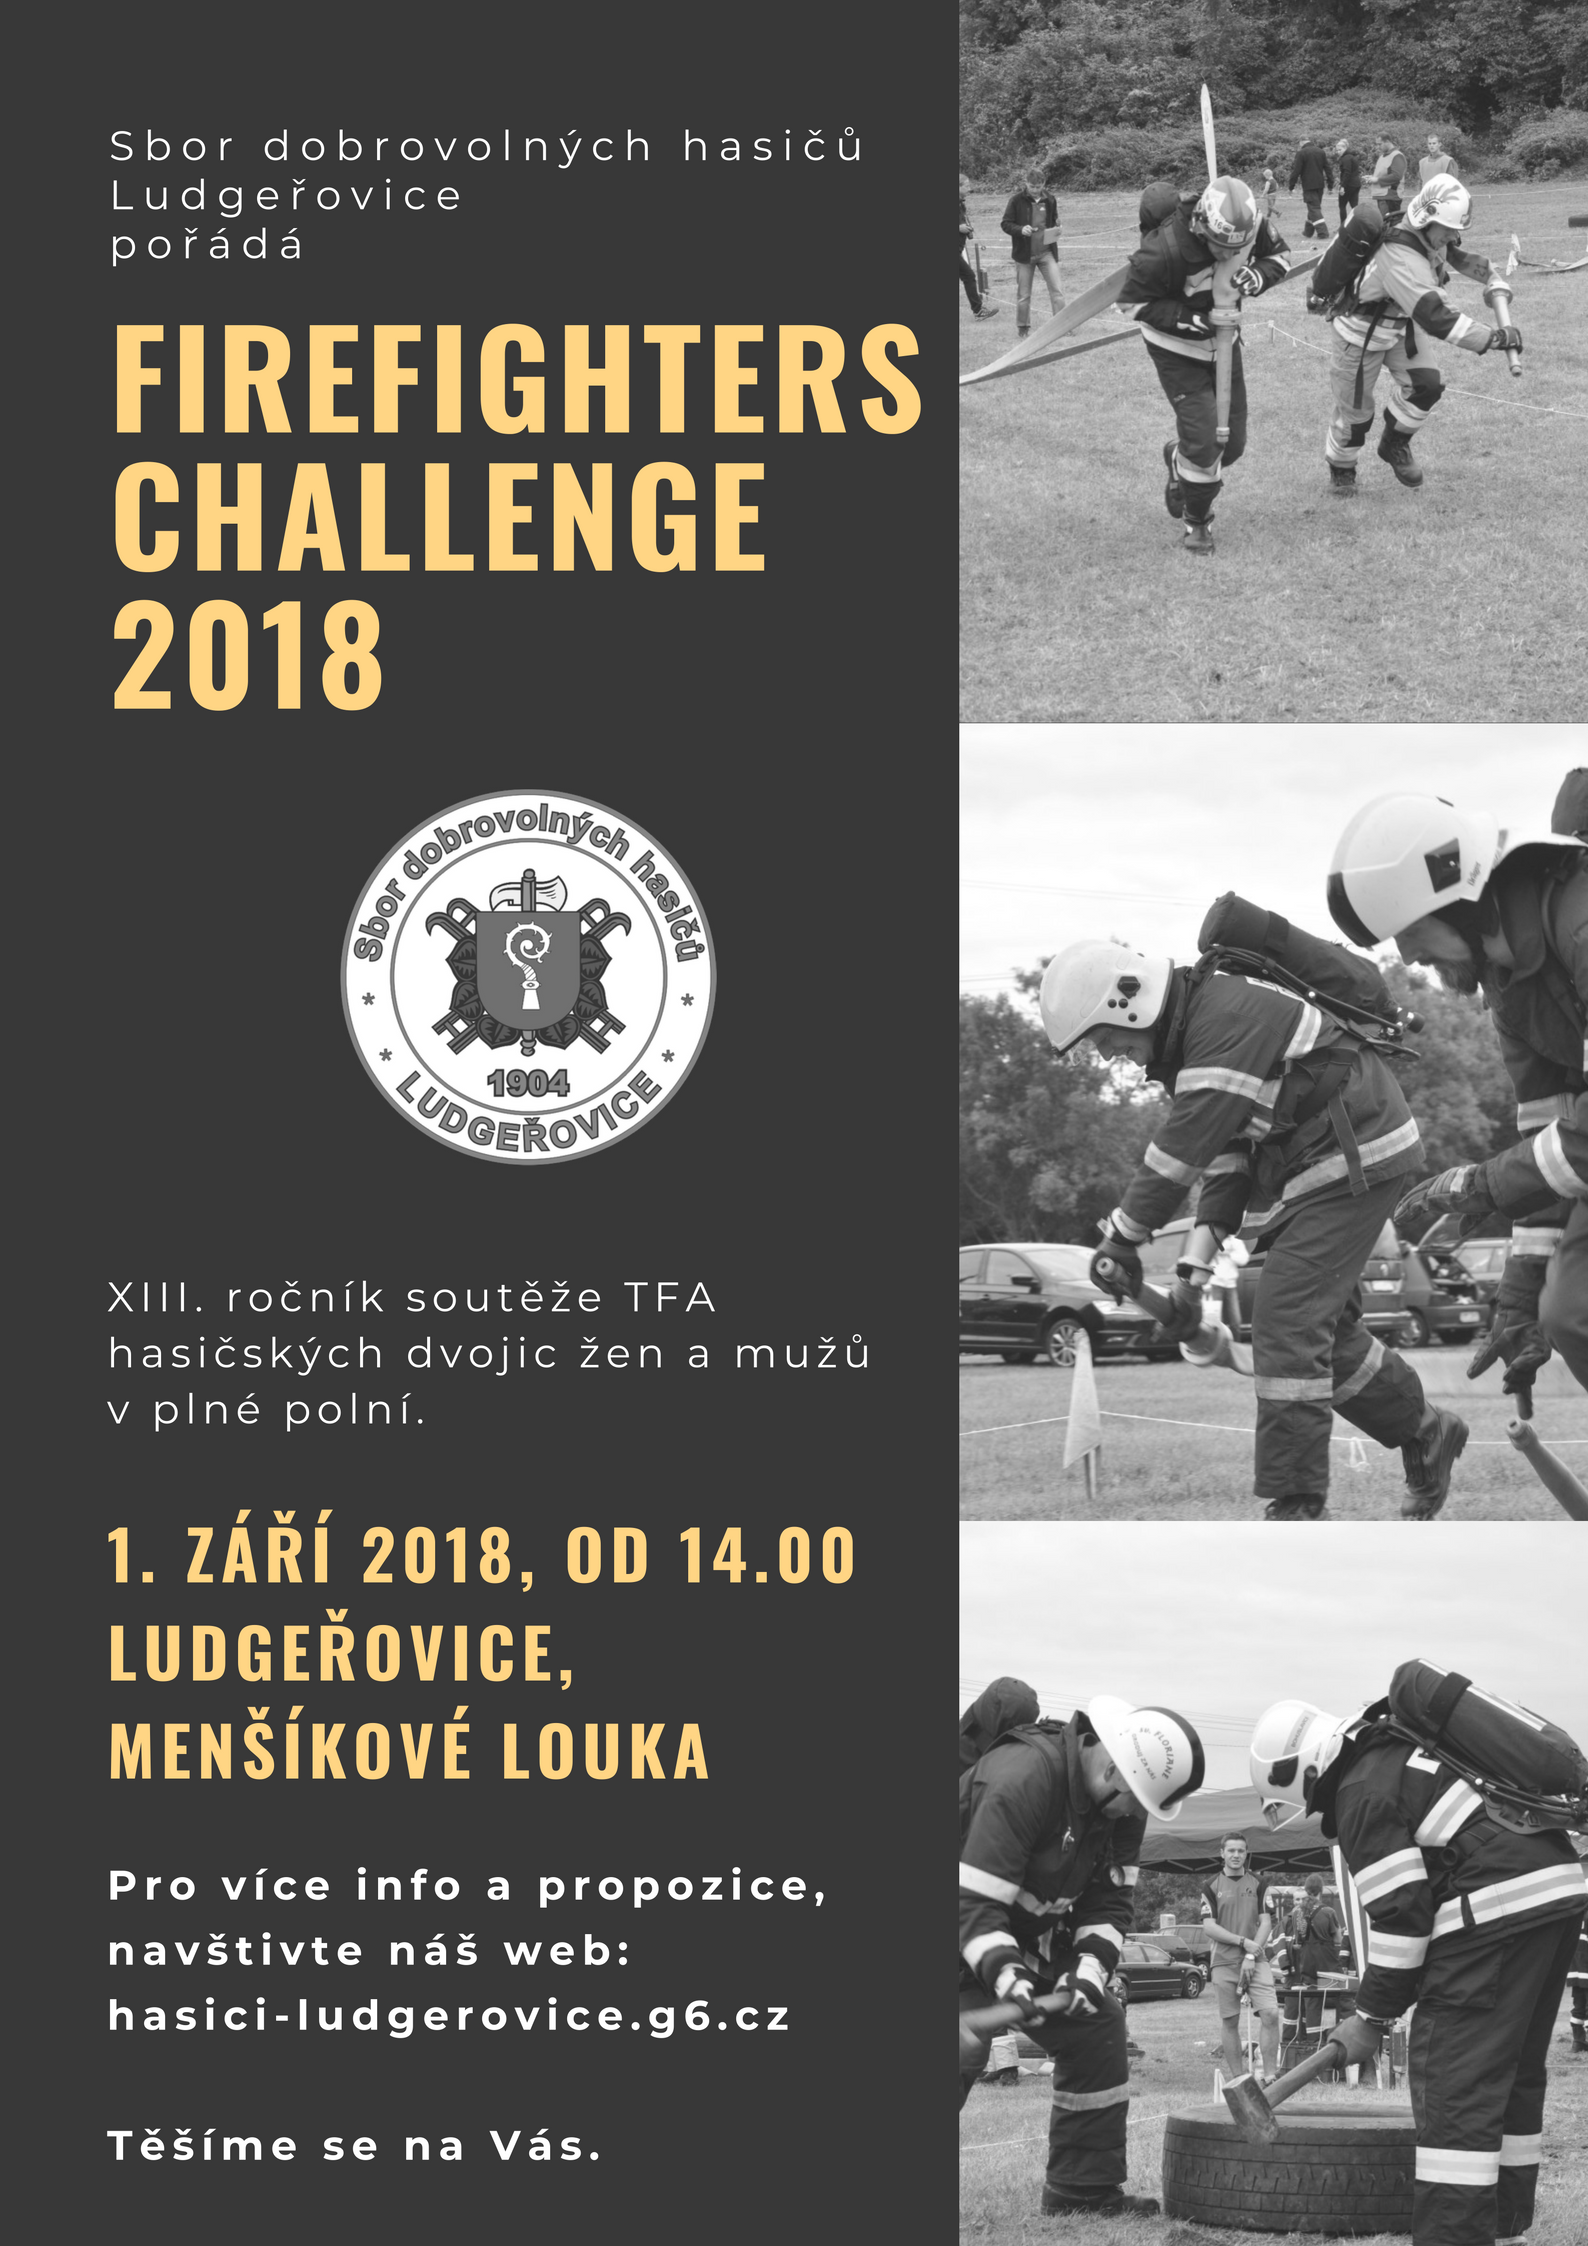 Firefighters Challenge 2018